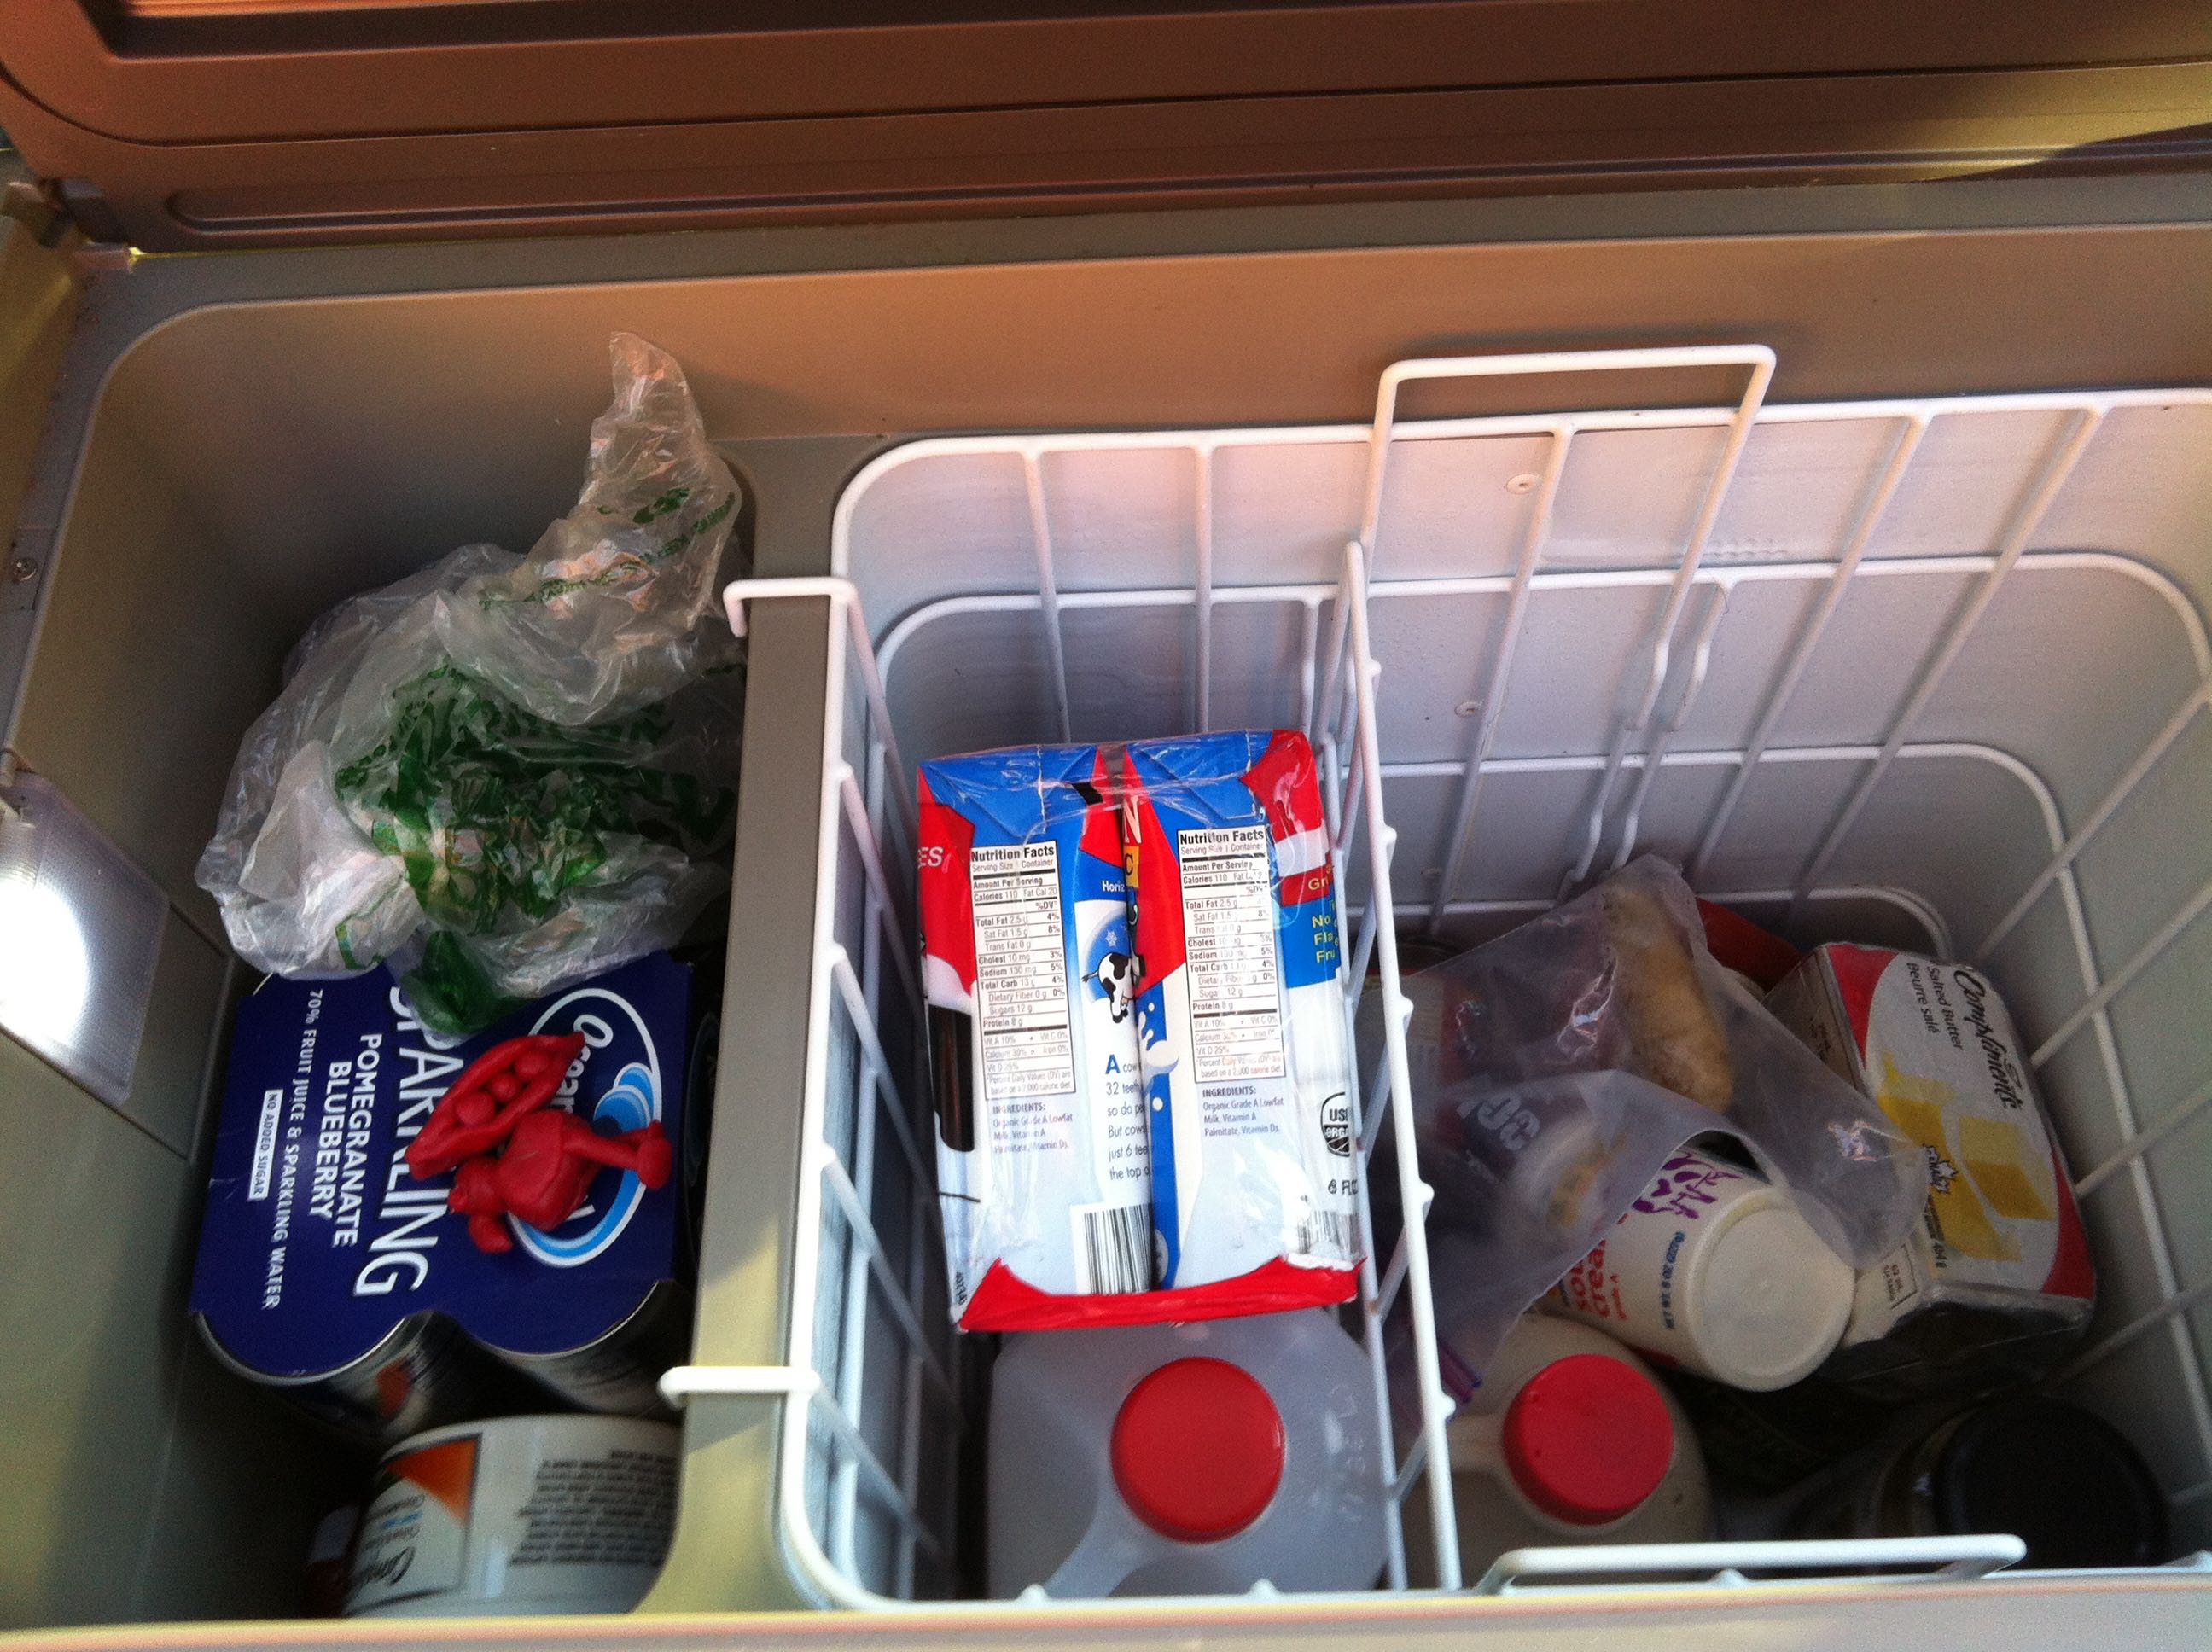 interior of camping refrigerator